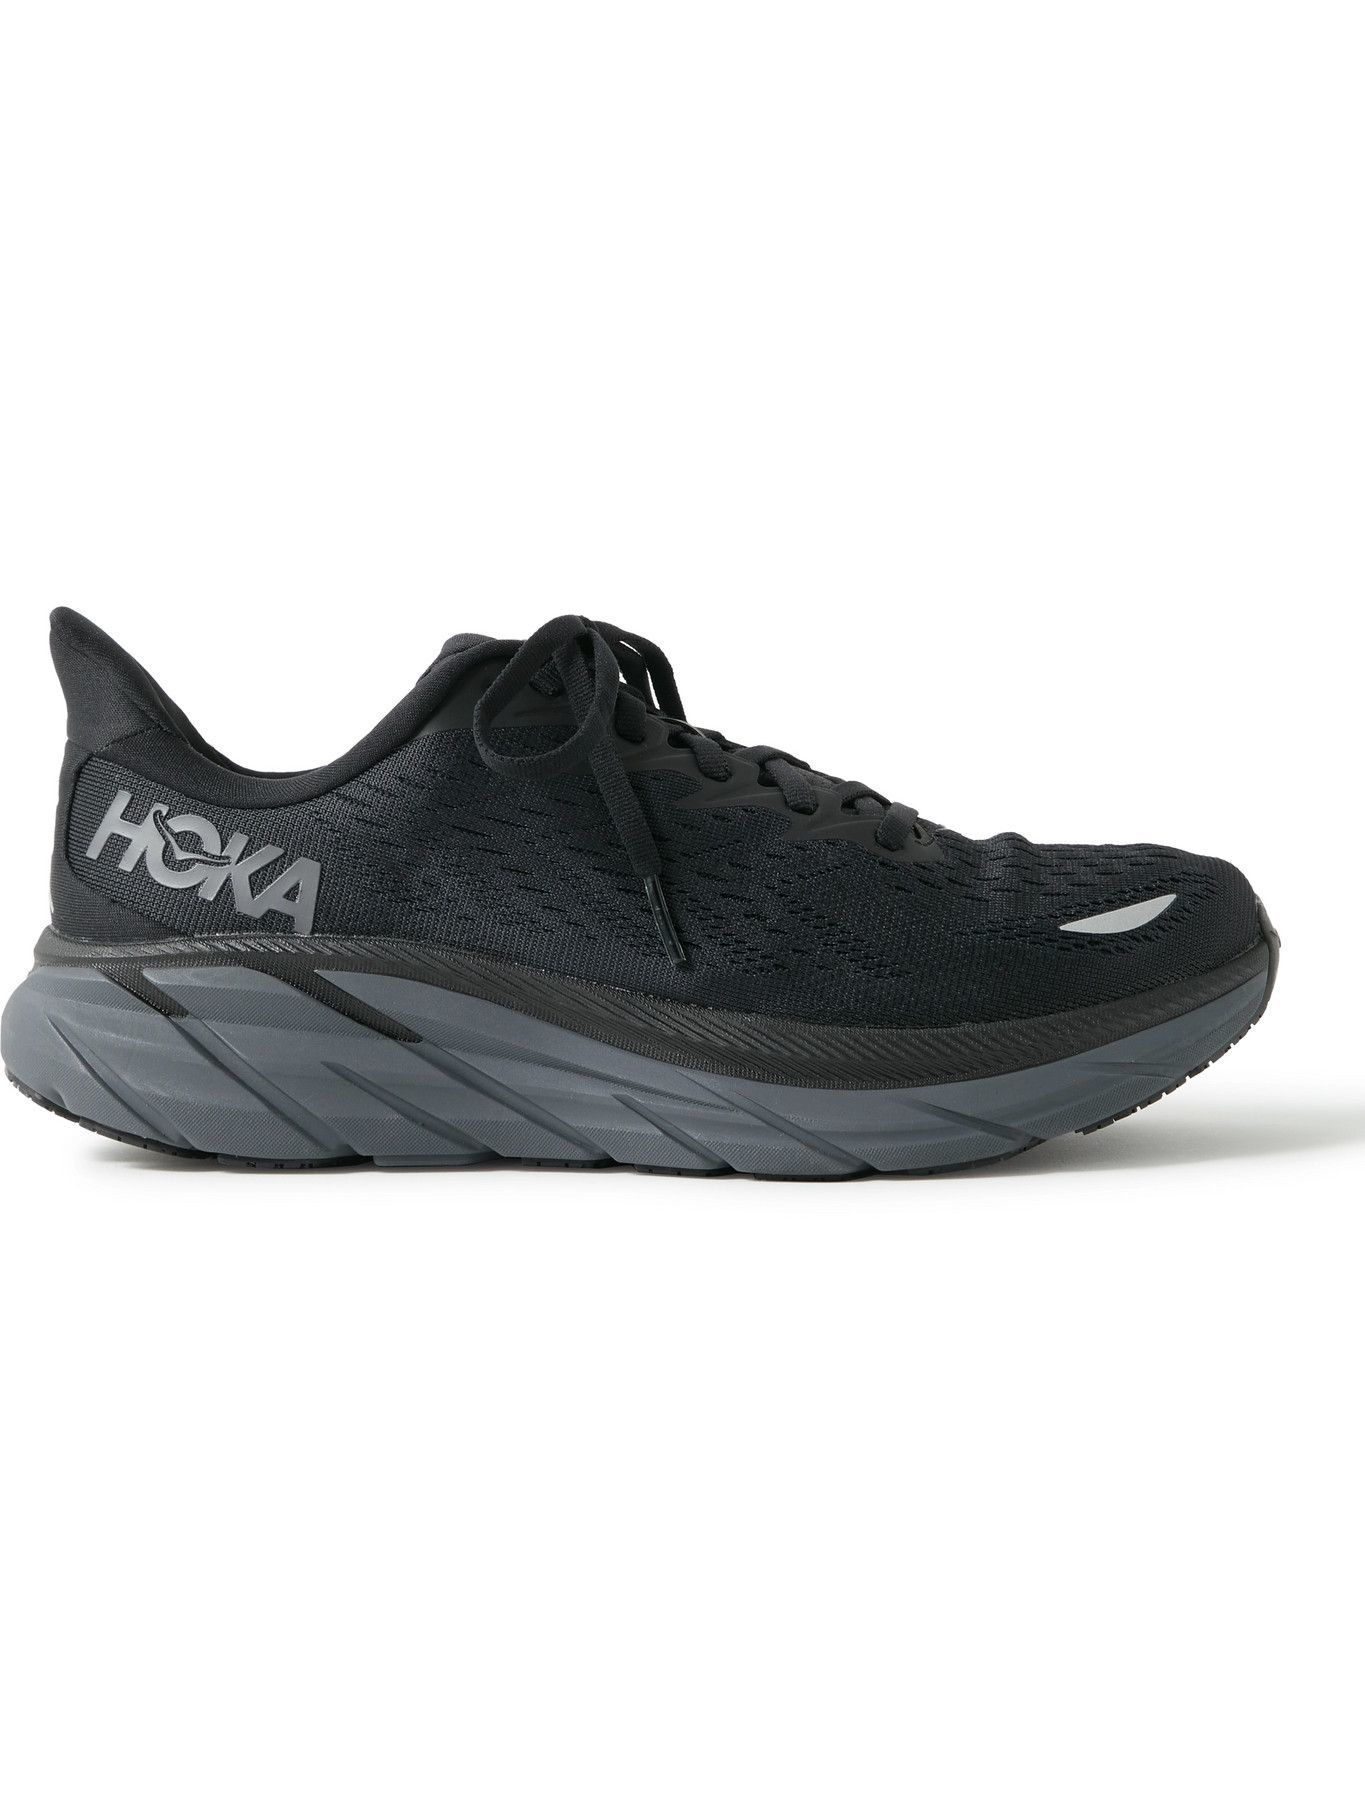 Photo: Hoka One One - Clifton 8 Rubber-Trimmed Mesh Running Sneakers - Black